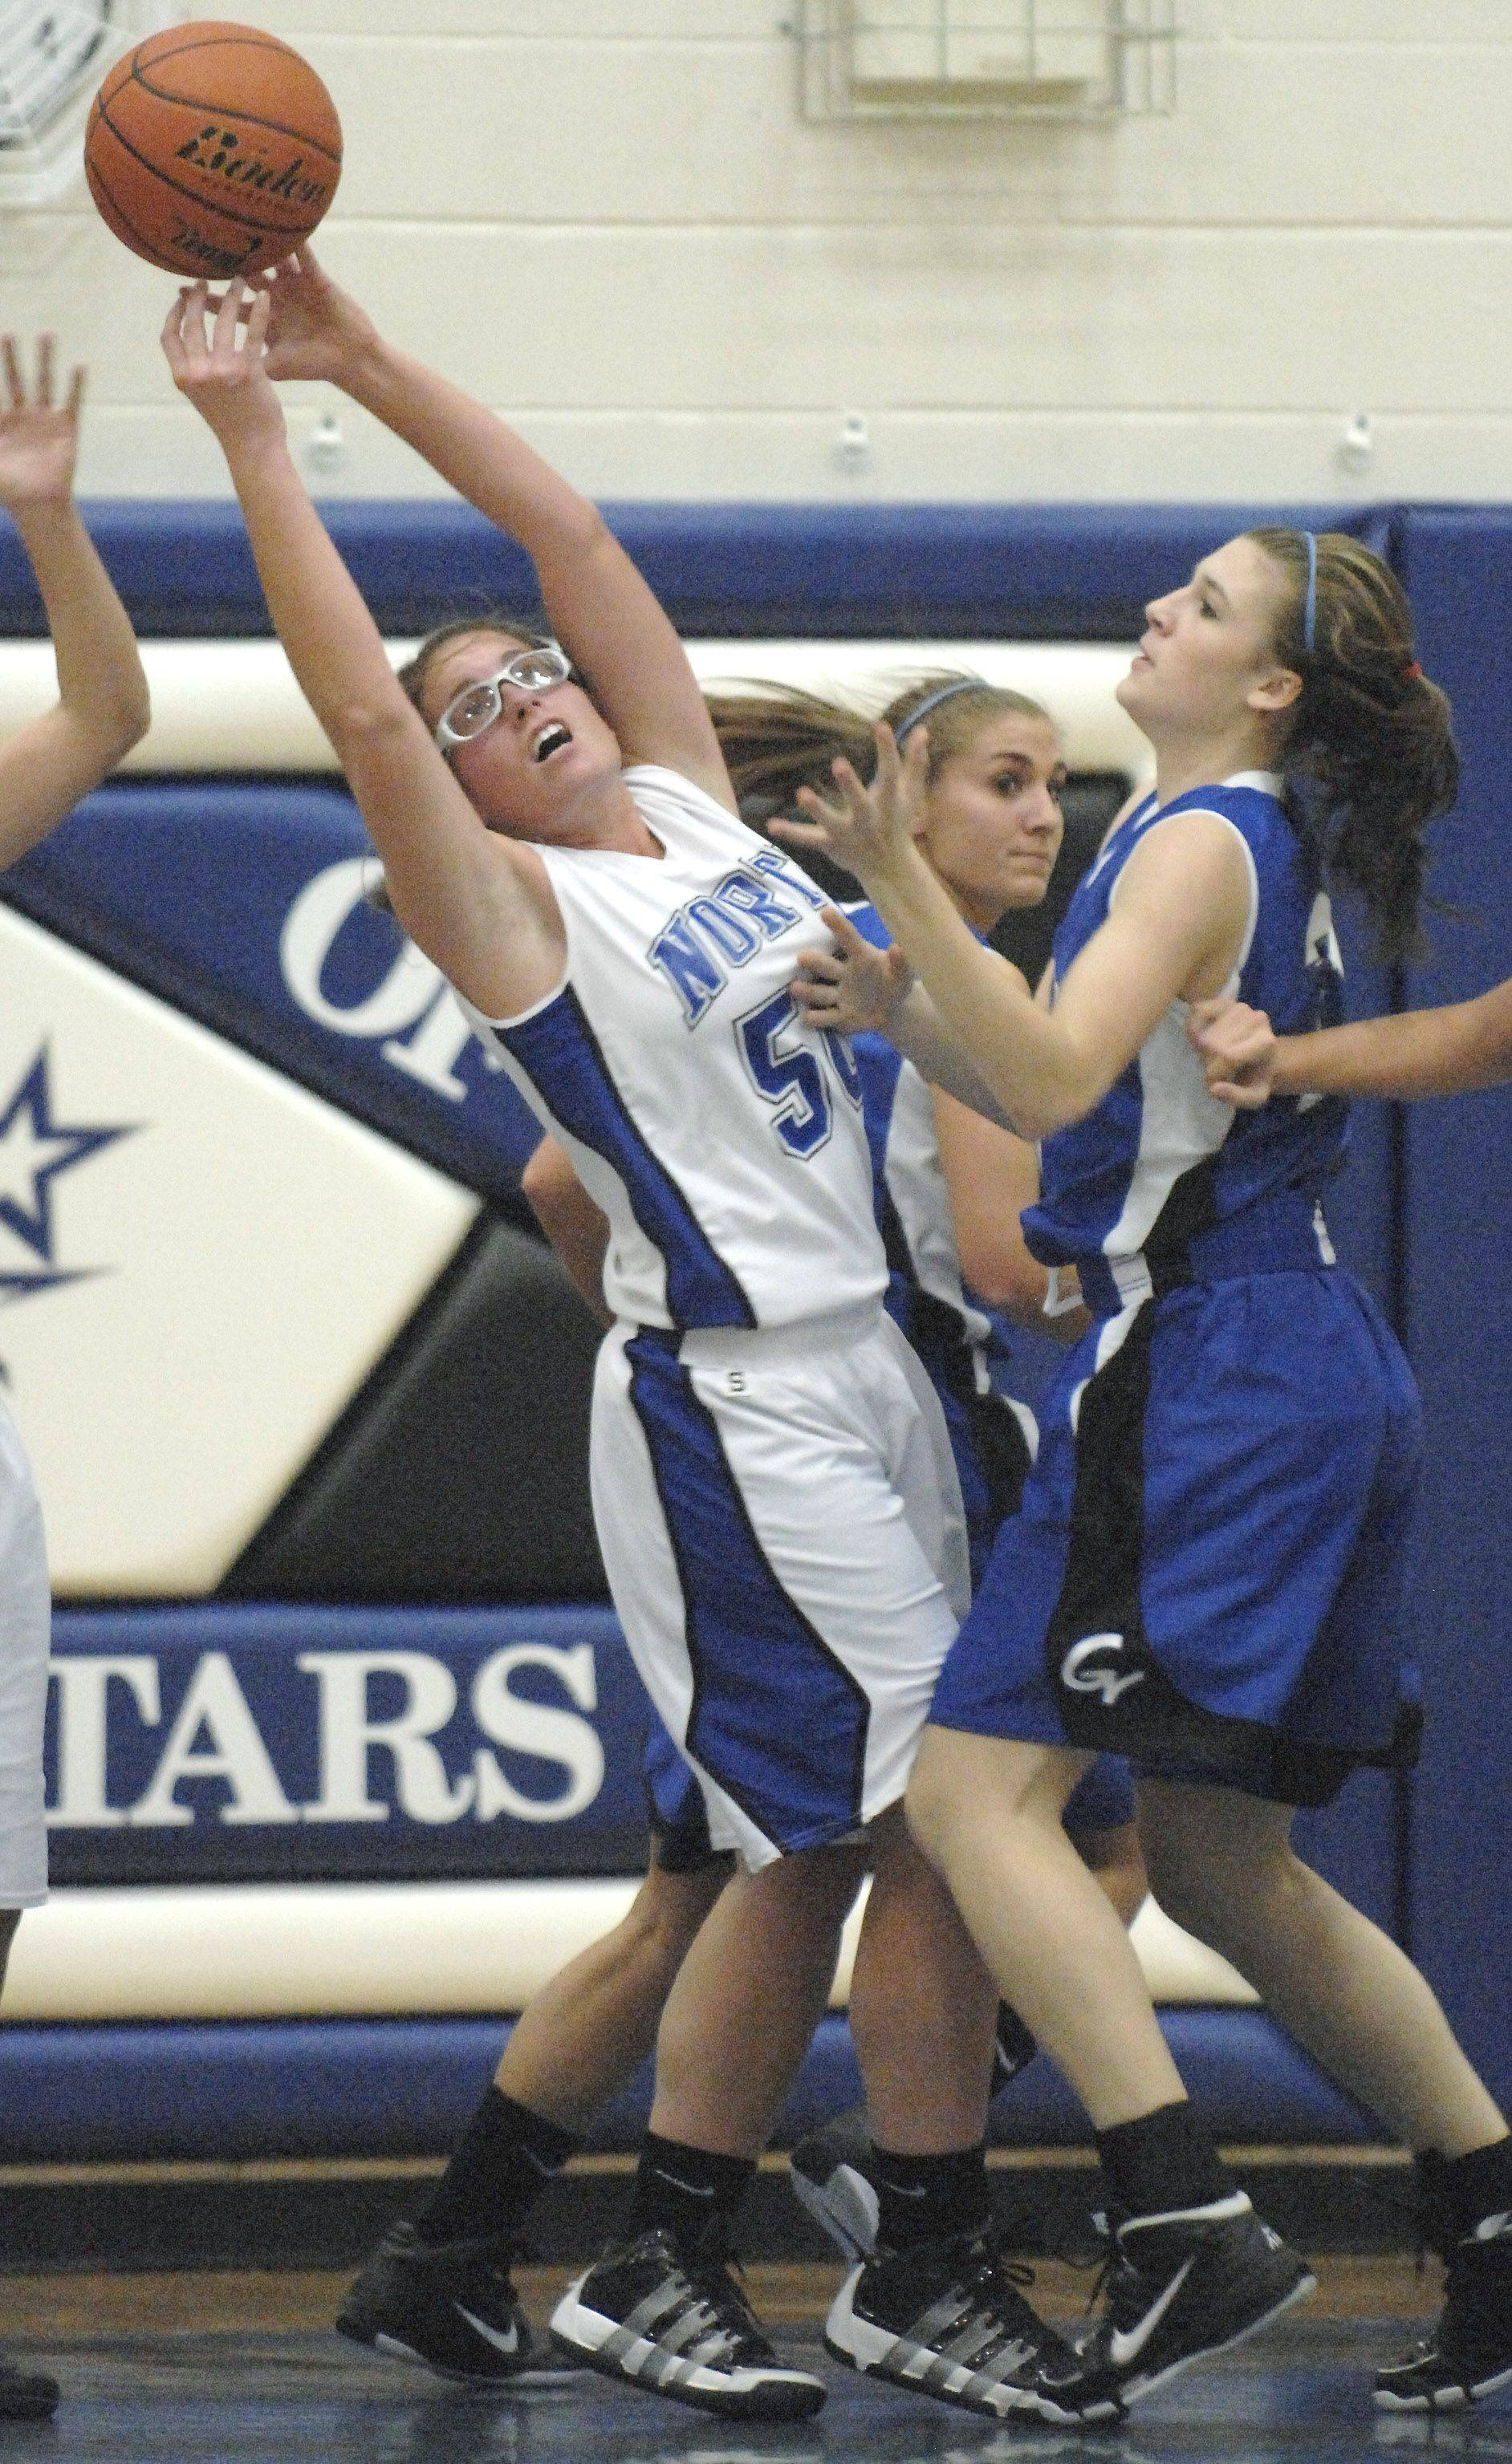 St. Charles North's Kate Booe battles for a rebound with Geneva's Sami Pawlak.